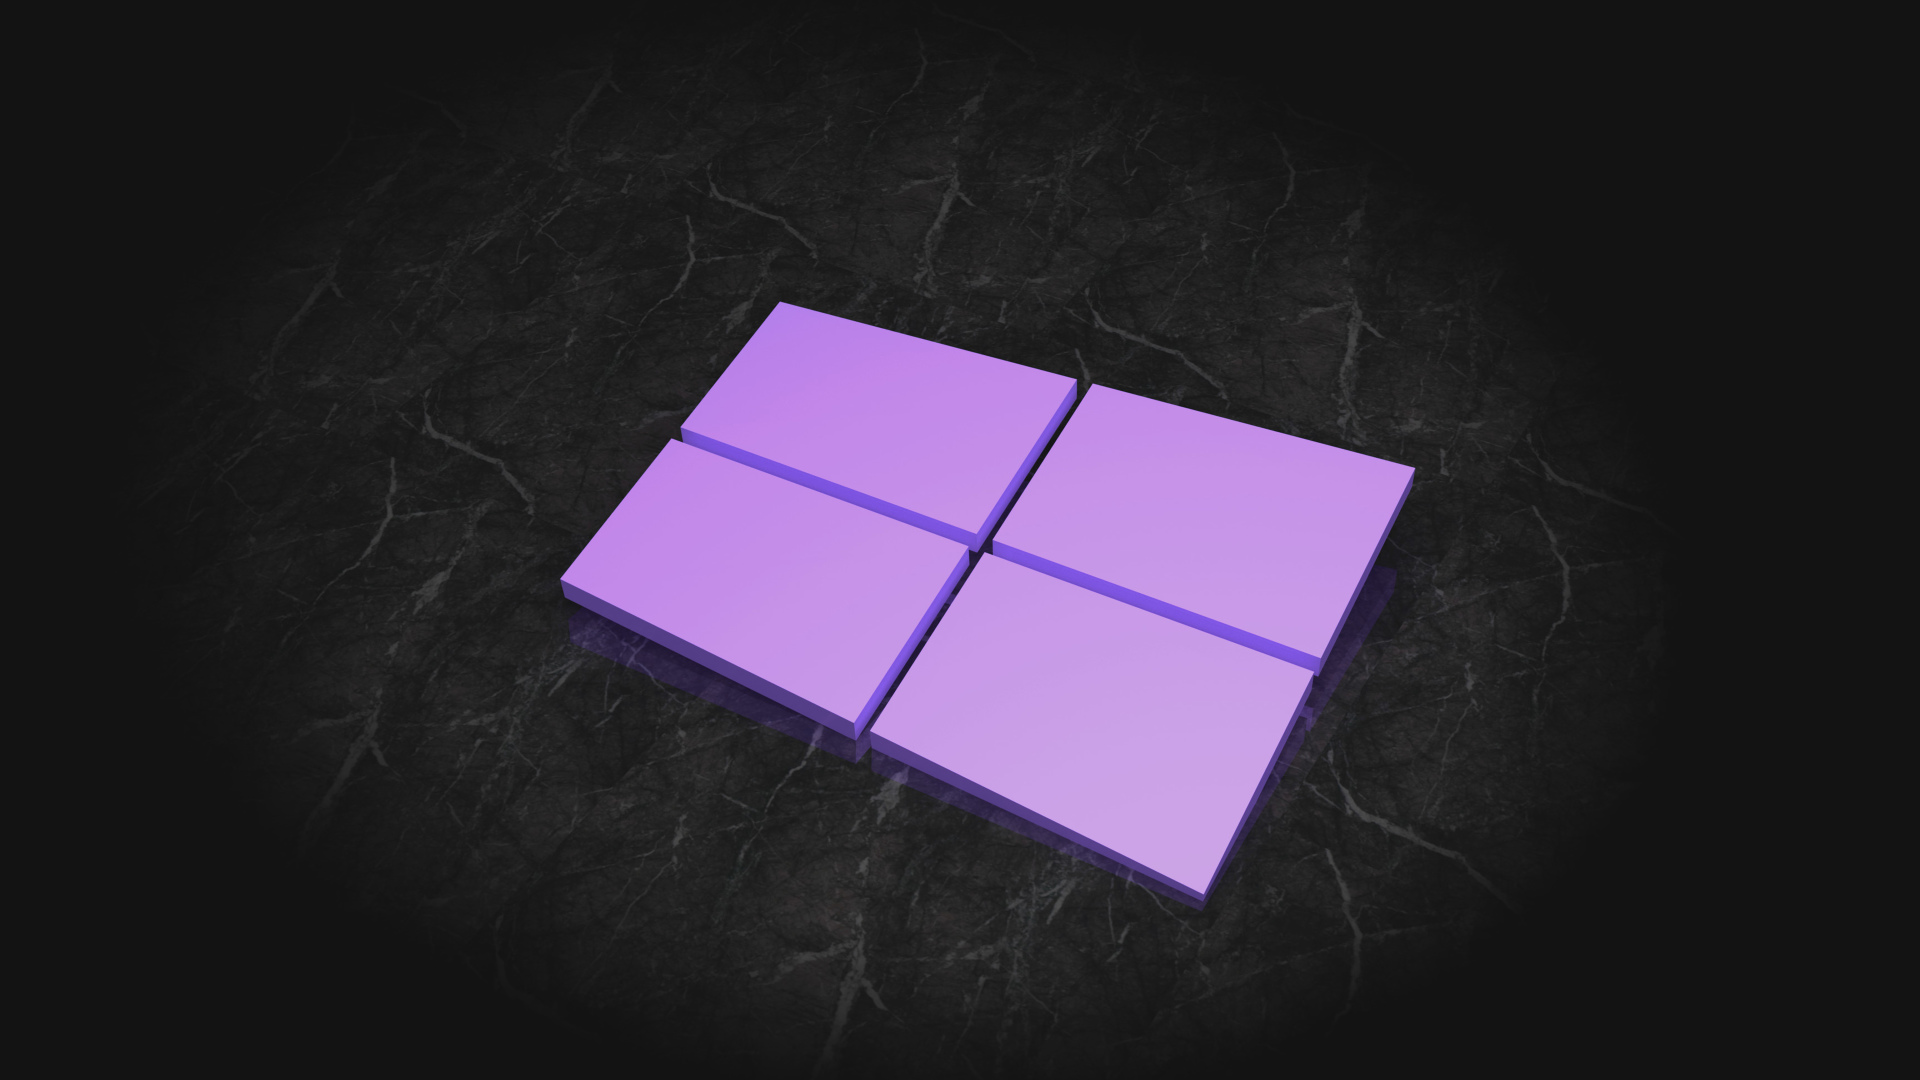 full hd 3d wallpapers 1920x1080,purple,violet,lilac,material property,font